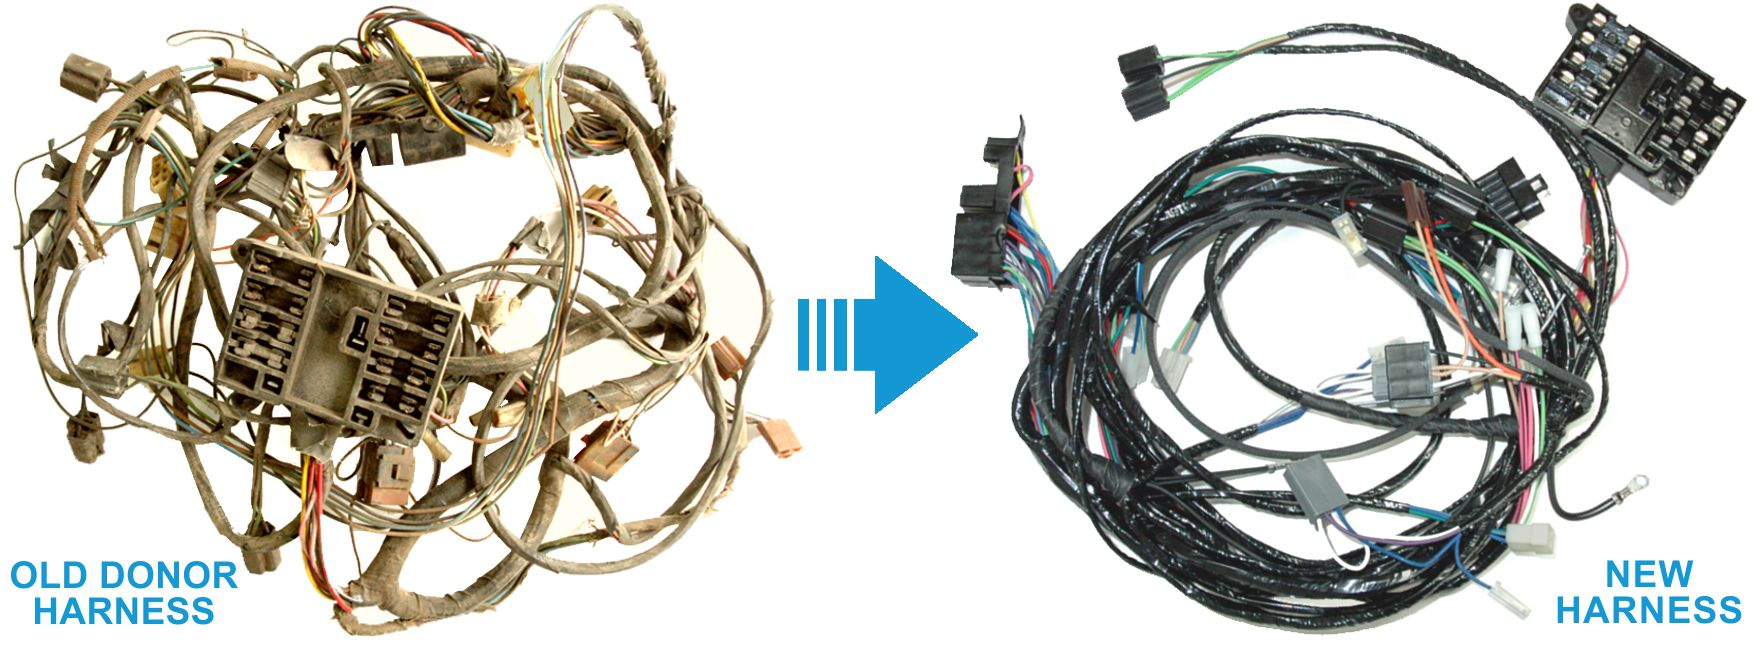 Exact Oem Reproduction Wiring Harnesses For Classic Muscle Cars 1983 Pontiac Firebird Fuse Box Donor Harness